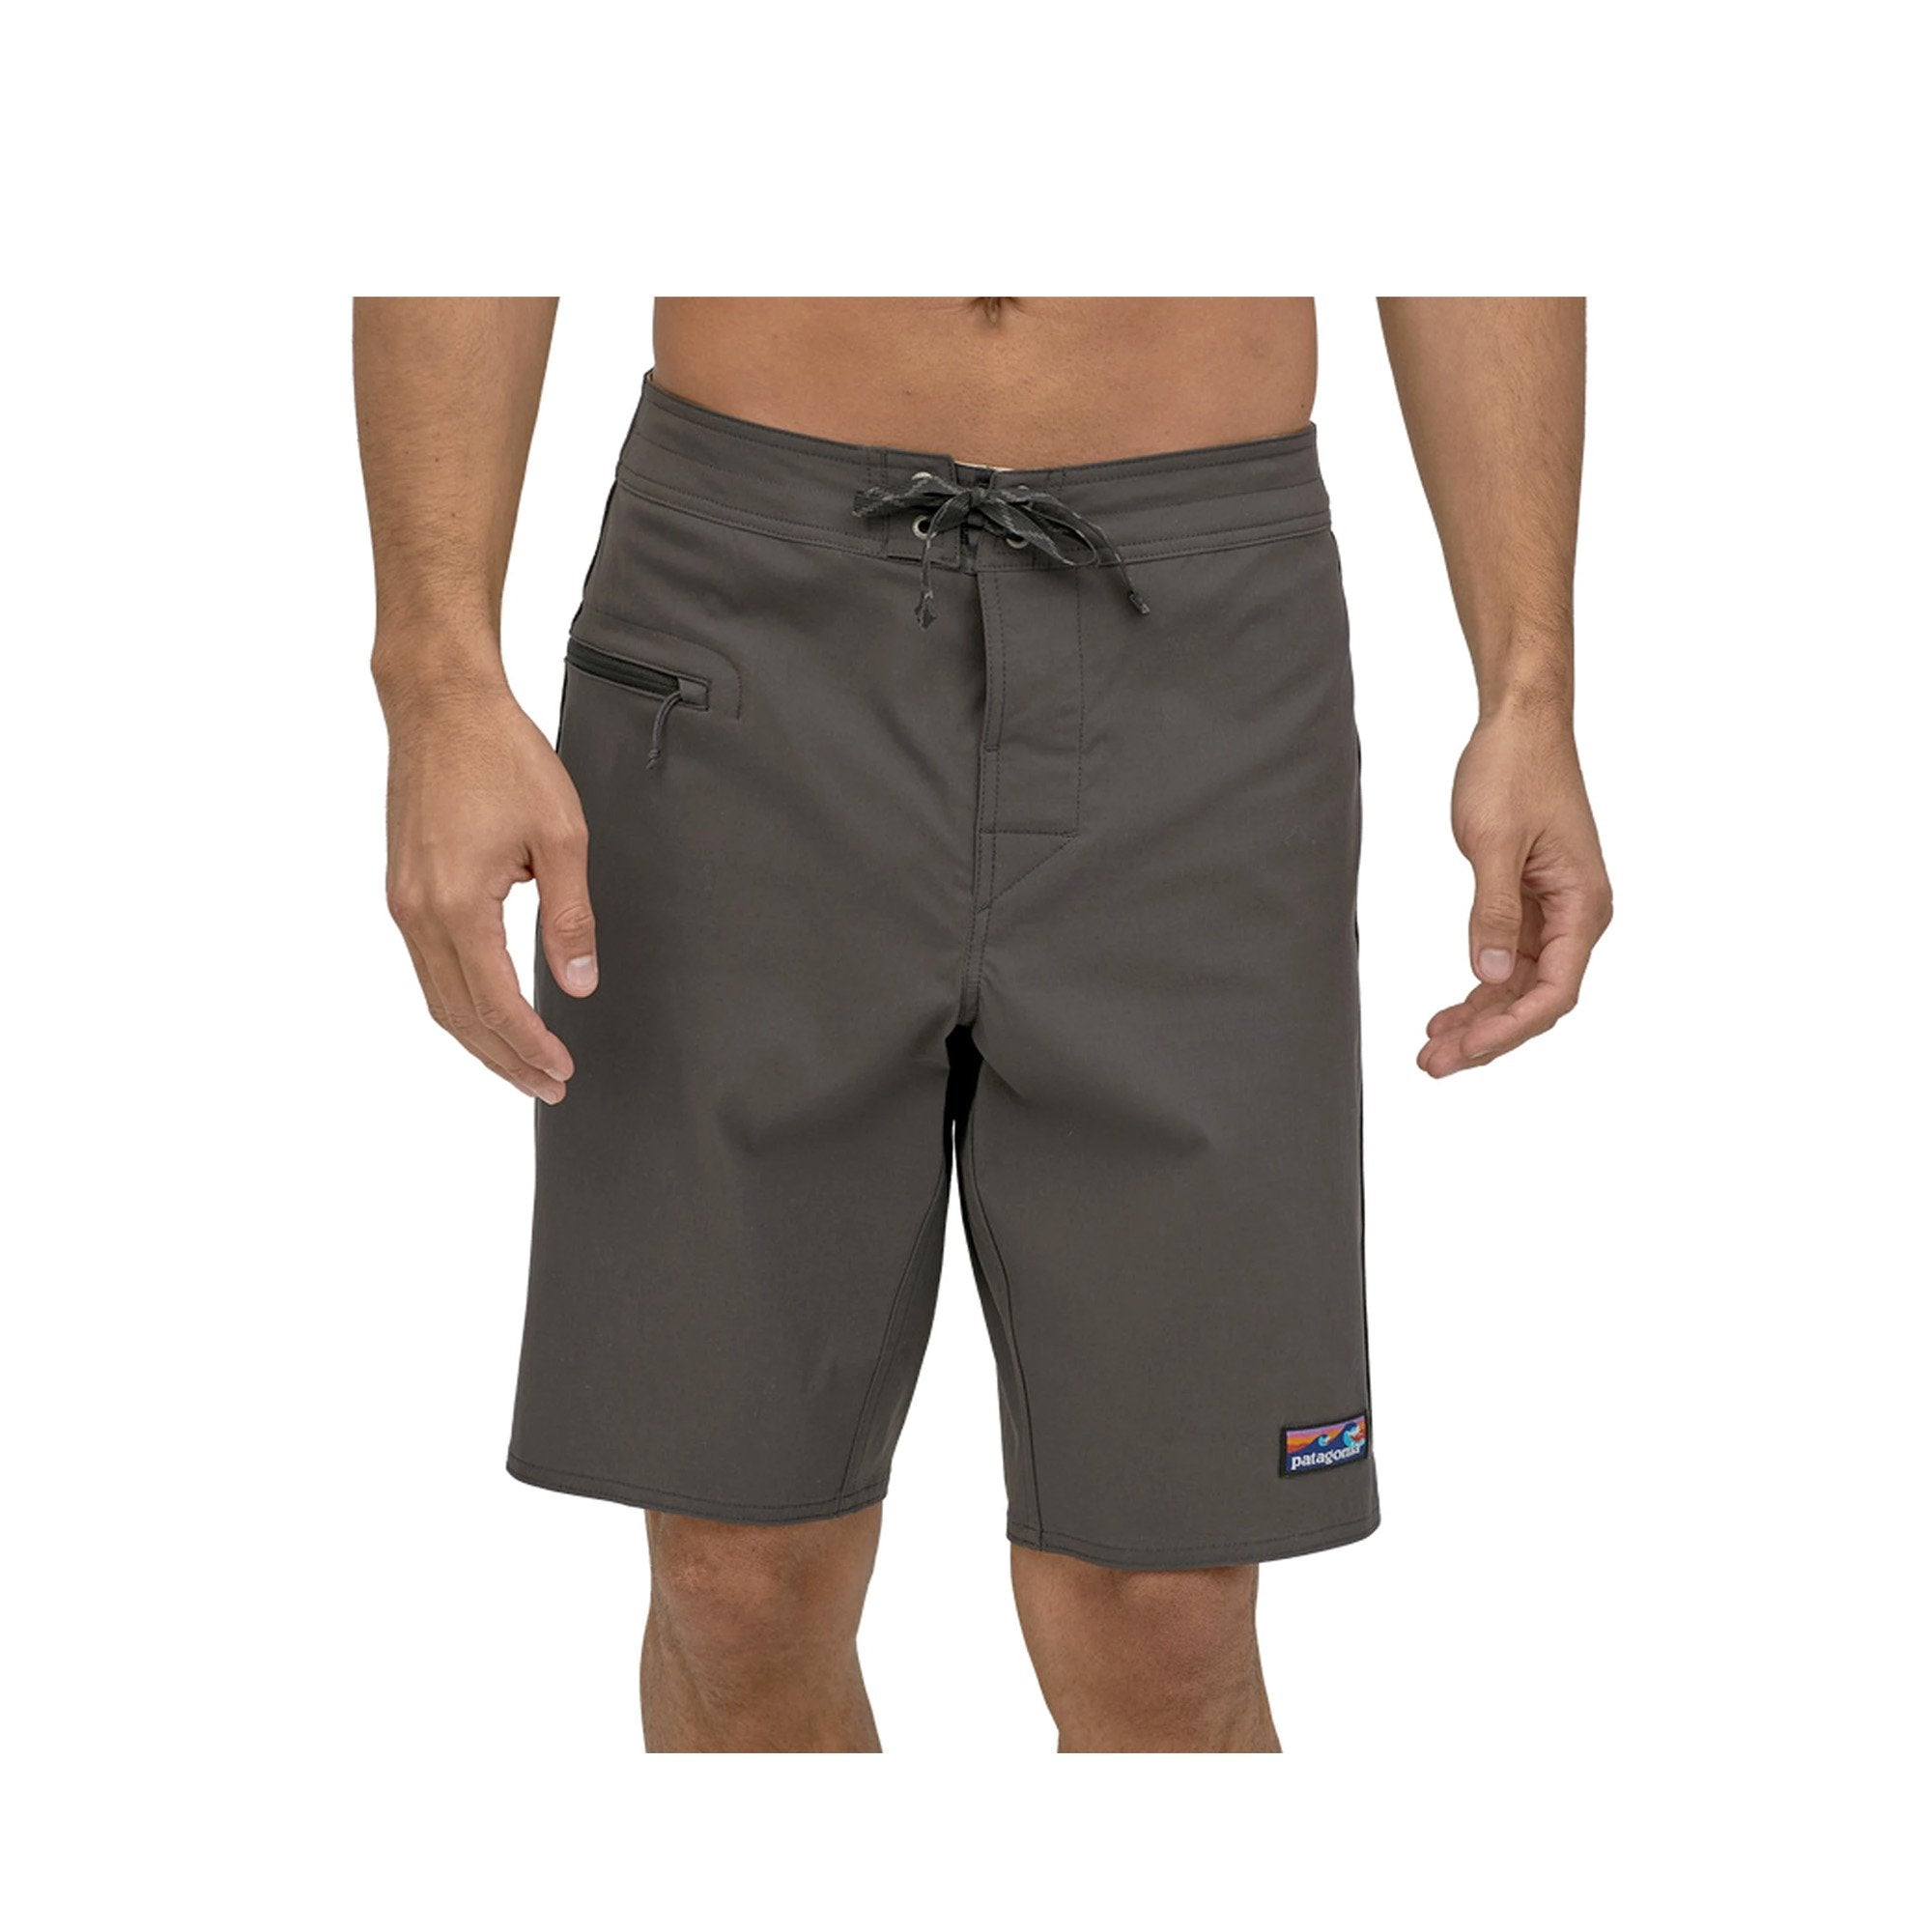 Patagonia Stretch Wavefarer Men's Boardshorts